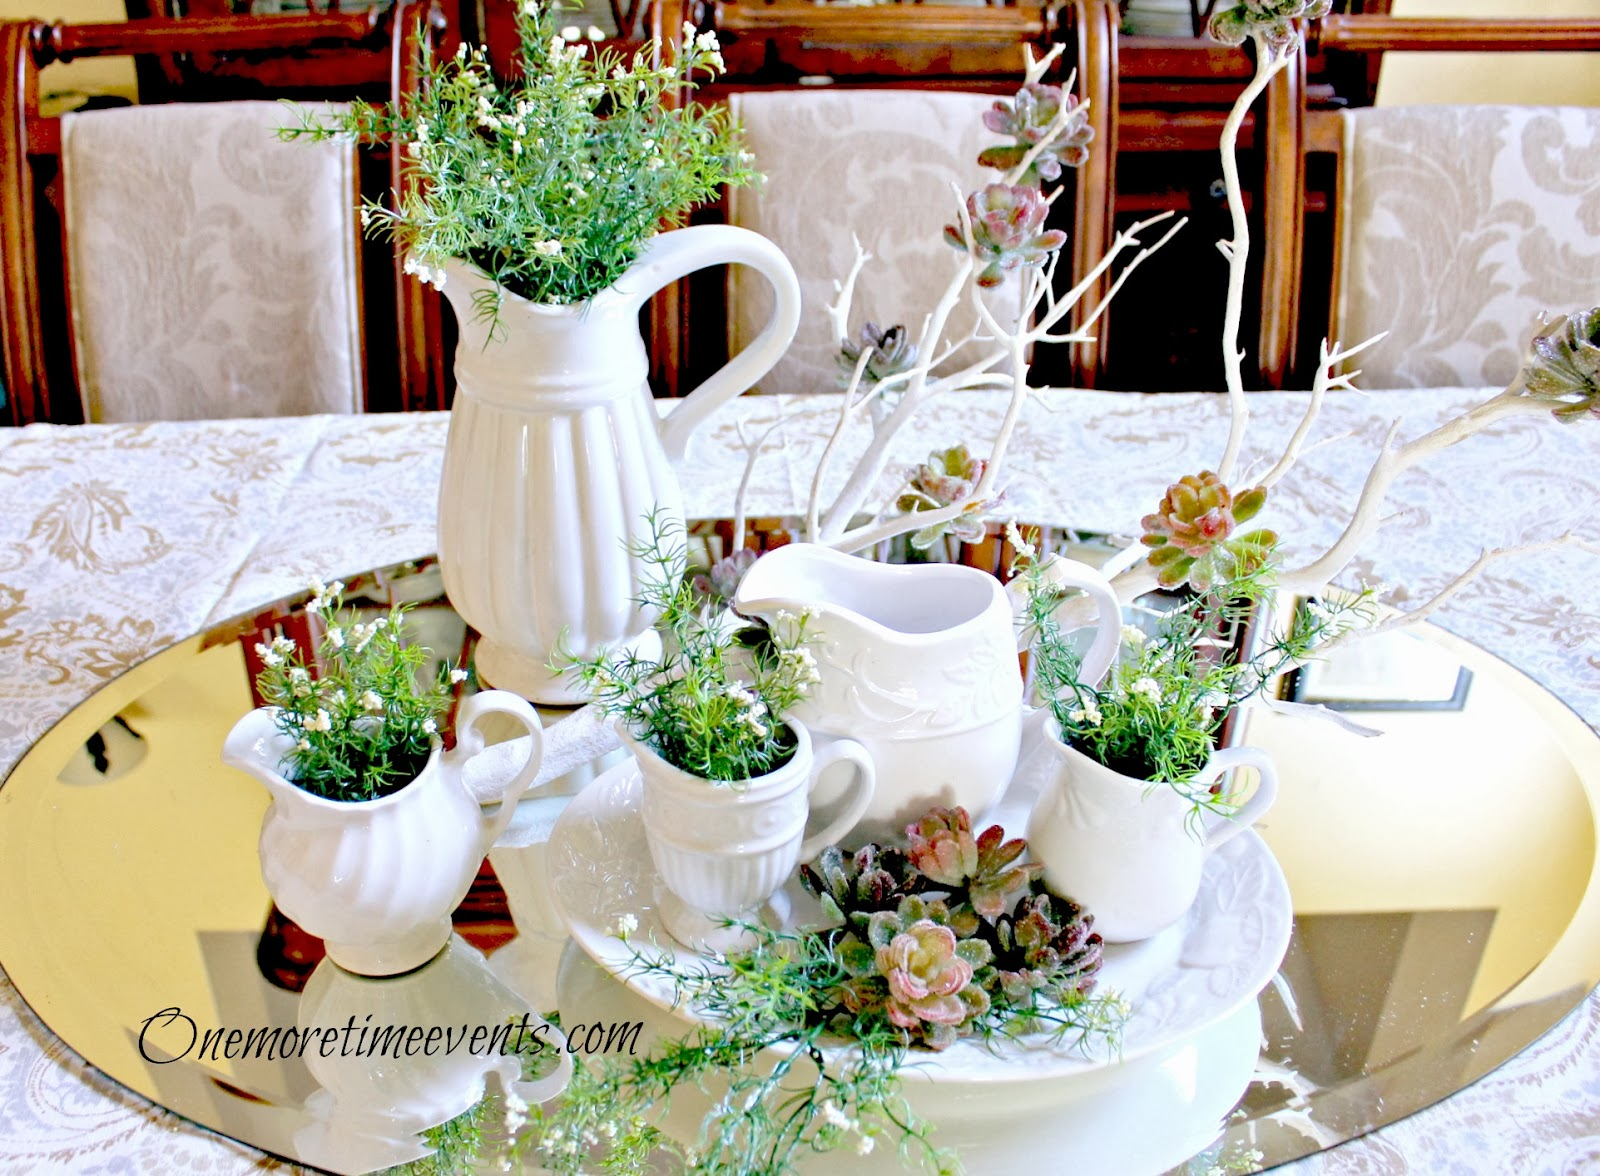 White Pitcher collection Centerpiece at One More Time Events.com